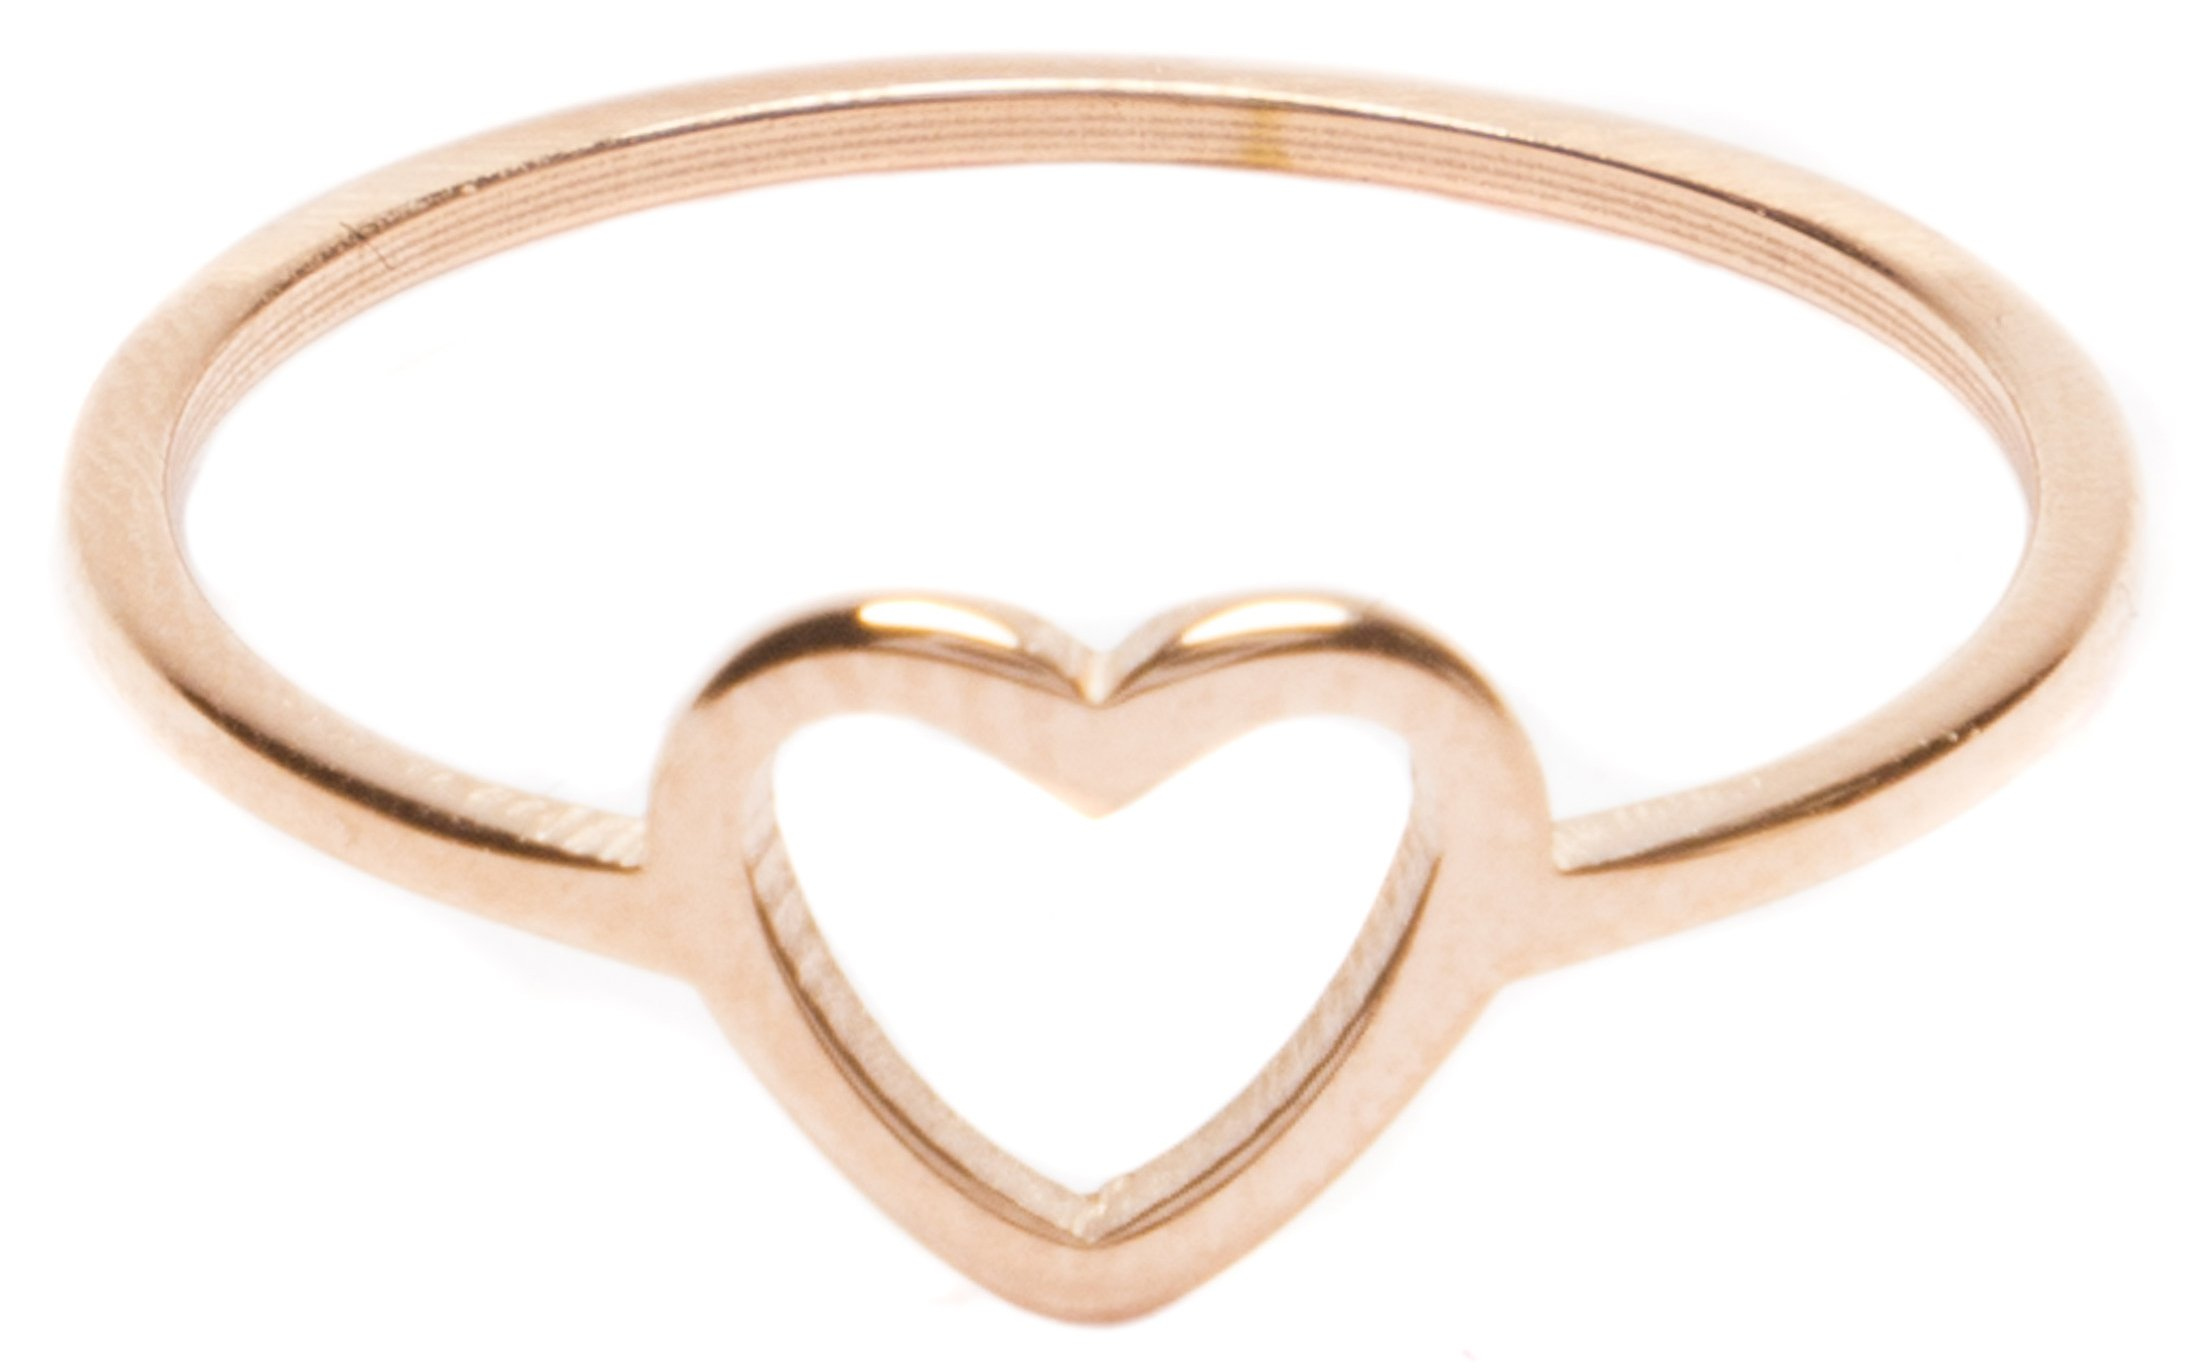 Heart Ring in Rose Gold | Delicate Ring Stainless Steel Jewelry